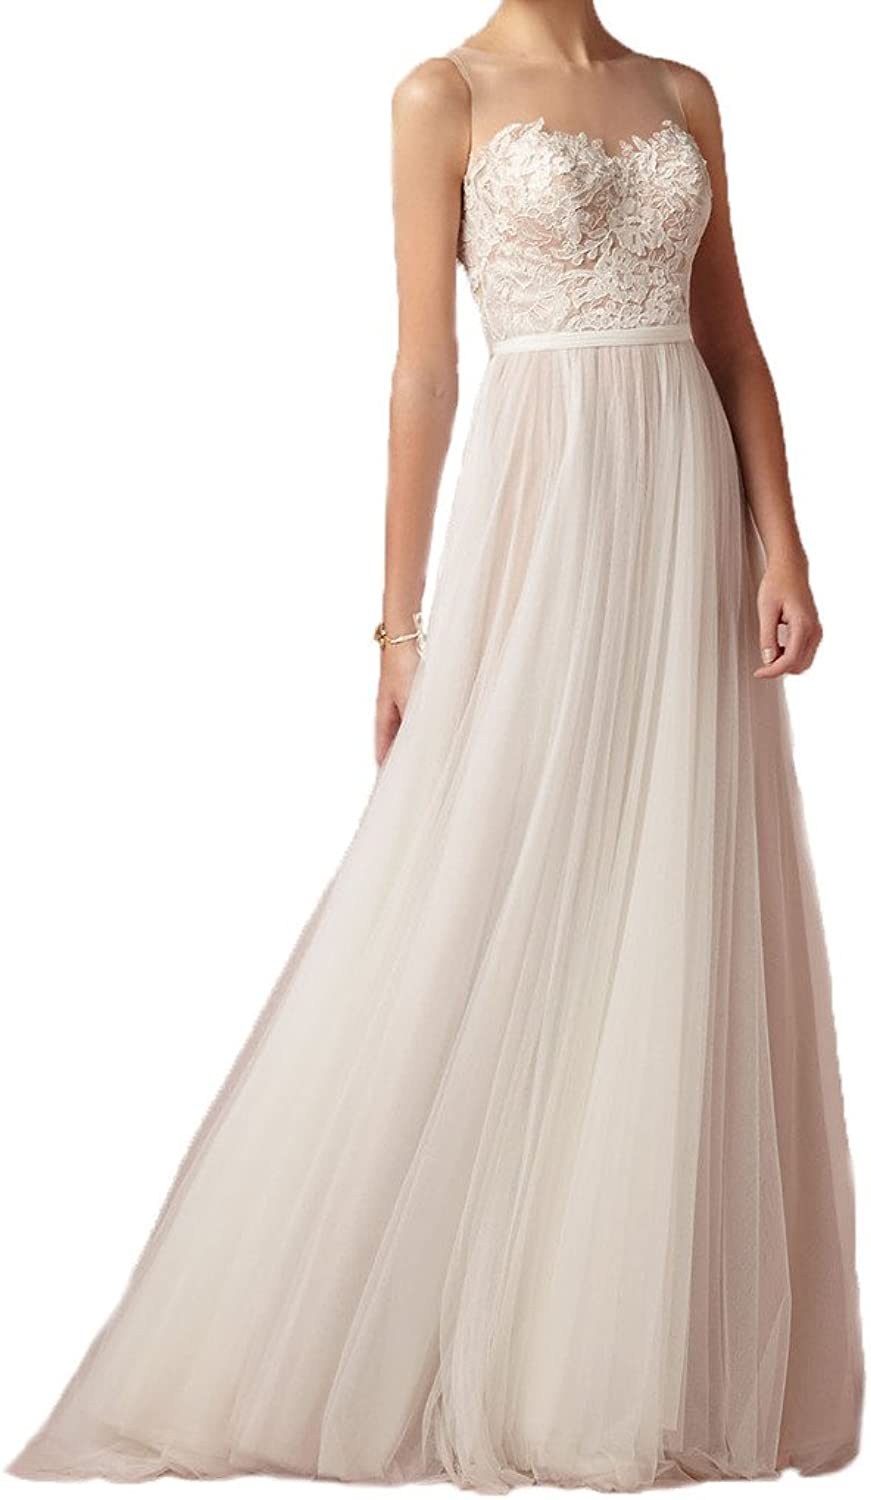 Cdress Sheer Lace Applique Long Tulle Beach Wedding Dresses Bridal Gowns